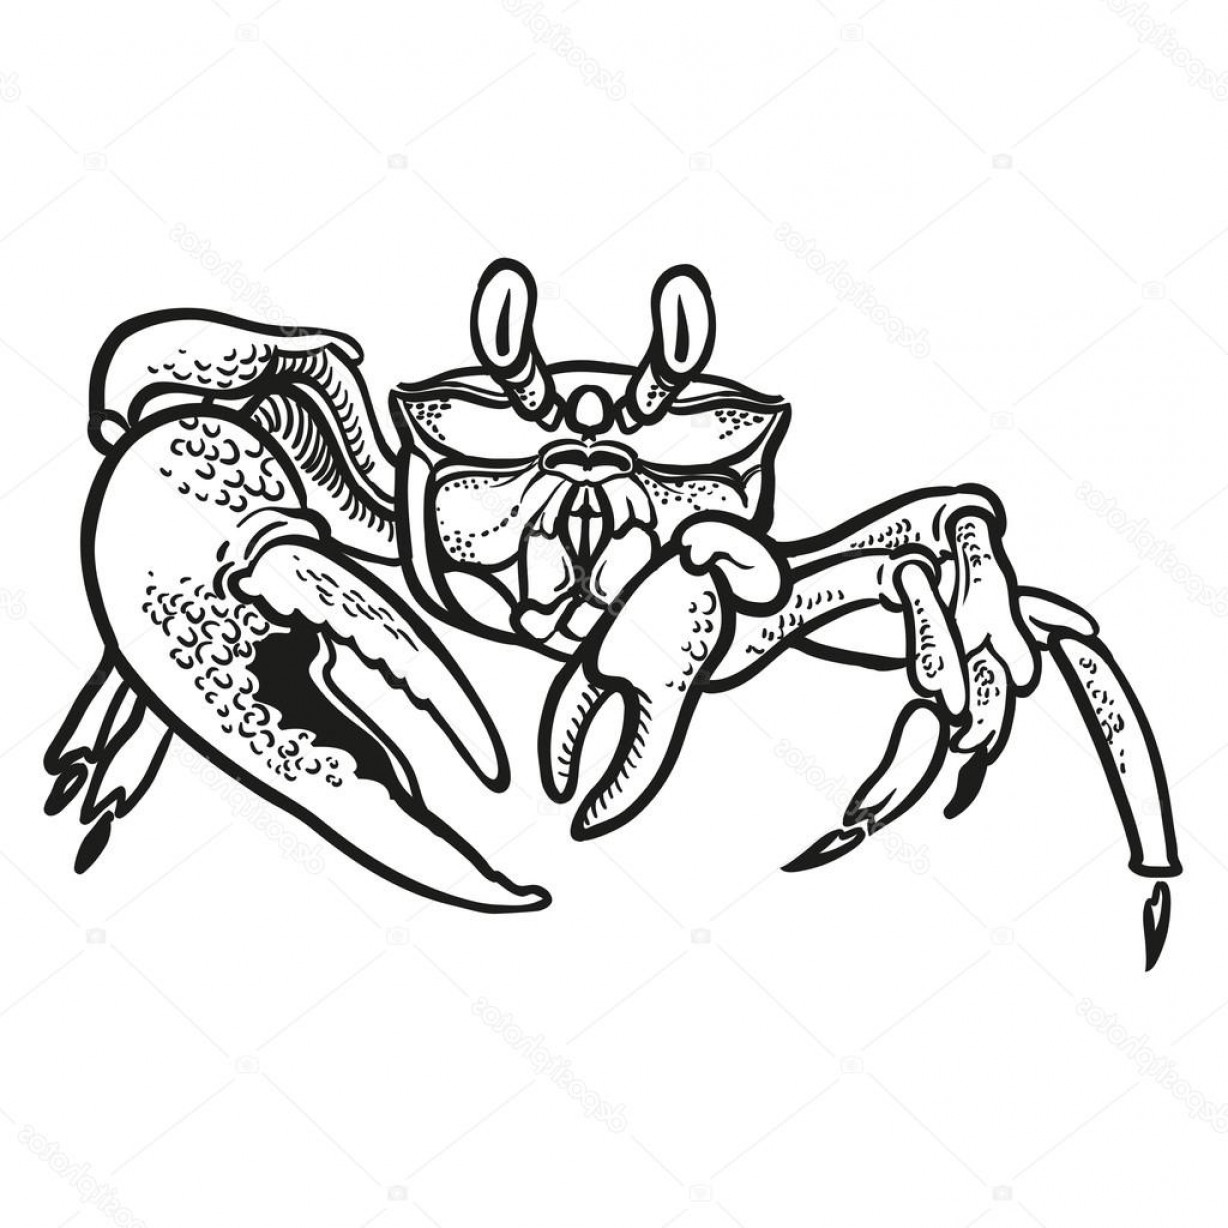 Crab Vector Black: Stock Illustration Detailed Hand Drawing Crab Vector